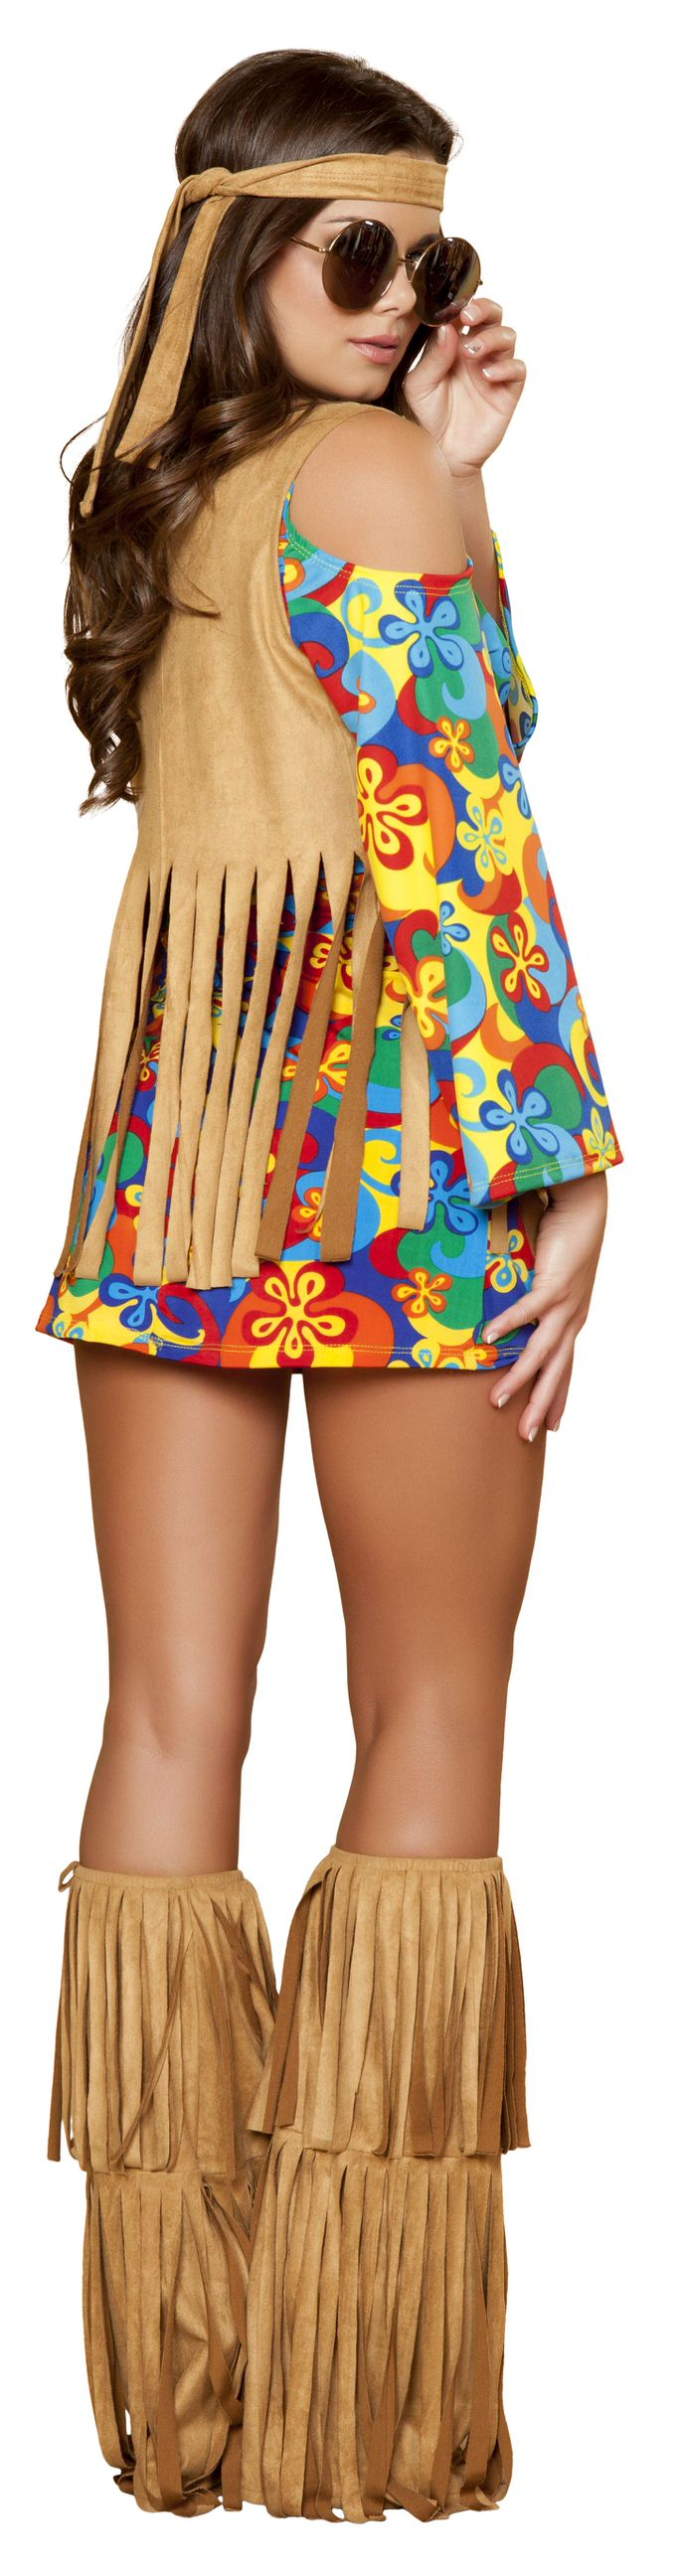 3 Piece Hippie Sexy Flower Child Groovy Mini Dress & Fringe Vest Costume